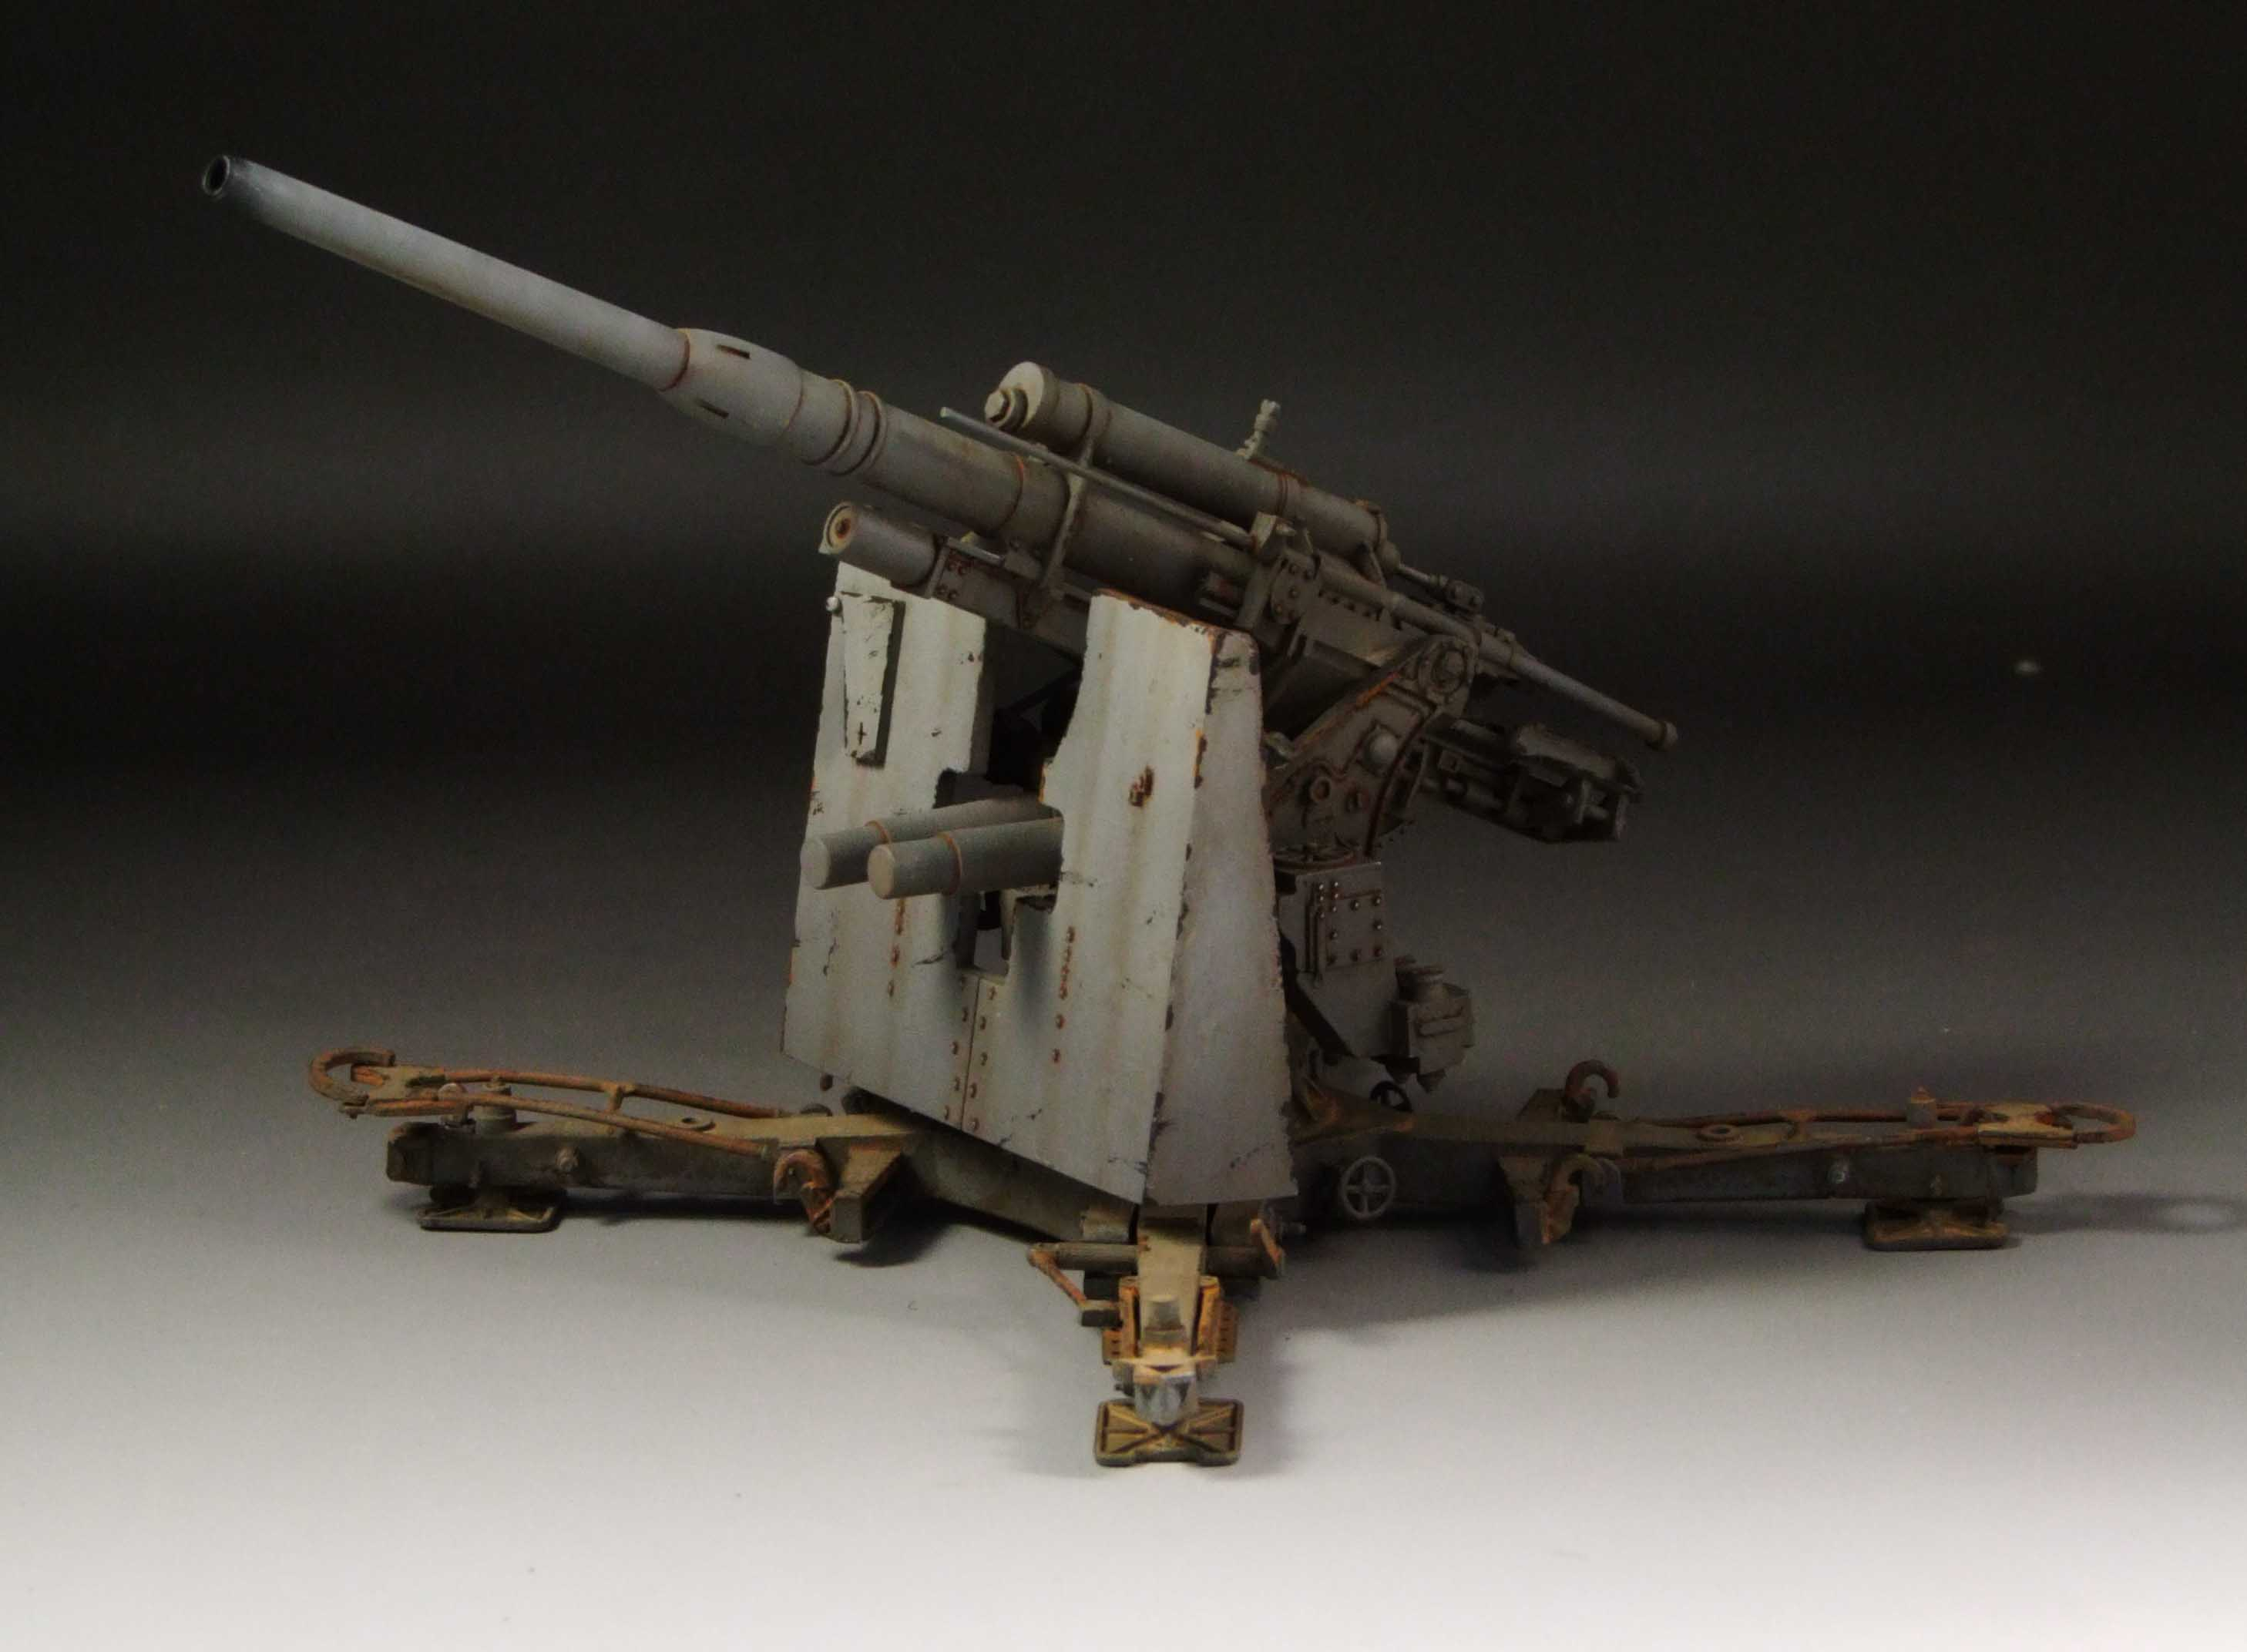 ww2 German 88 gun Flak 36/37.